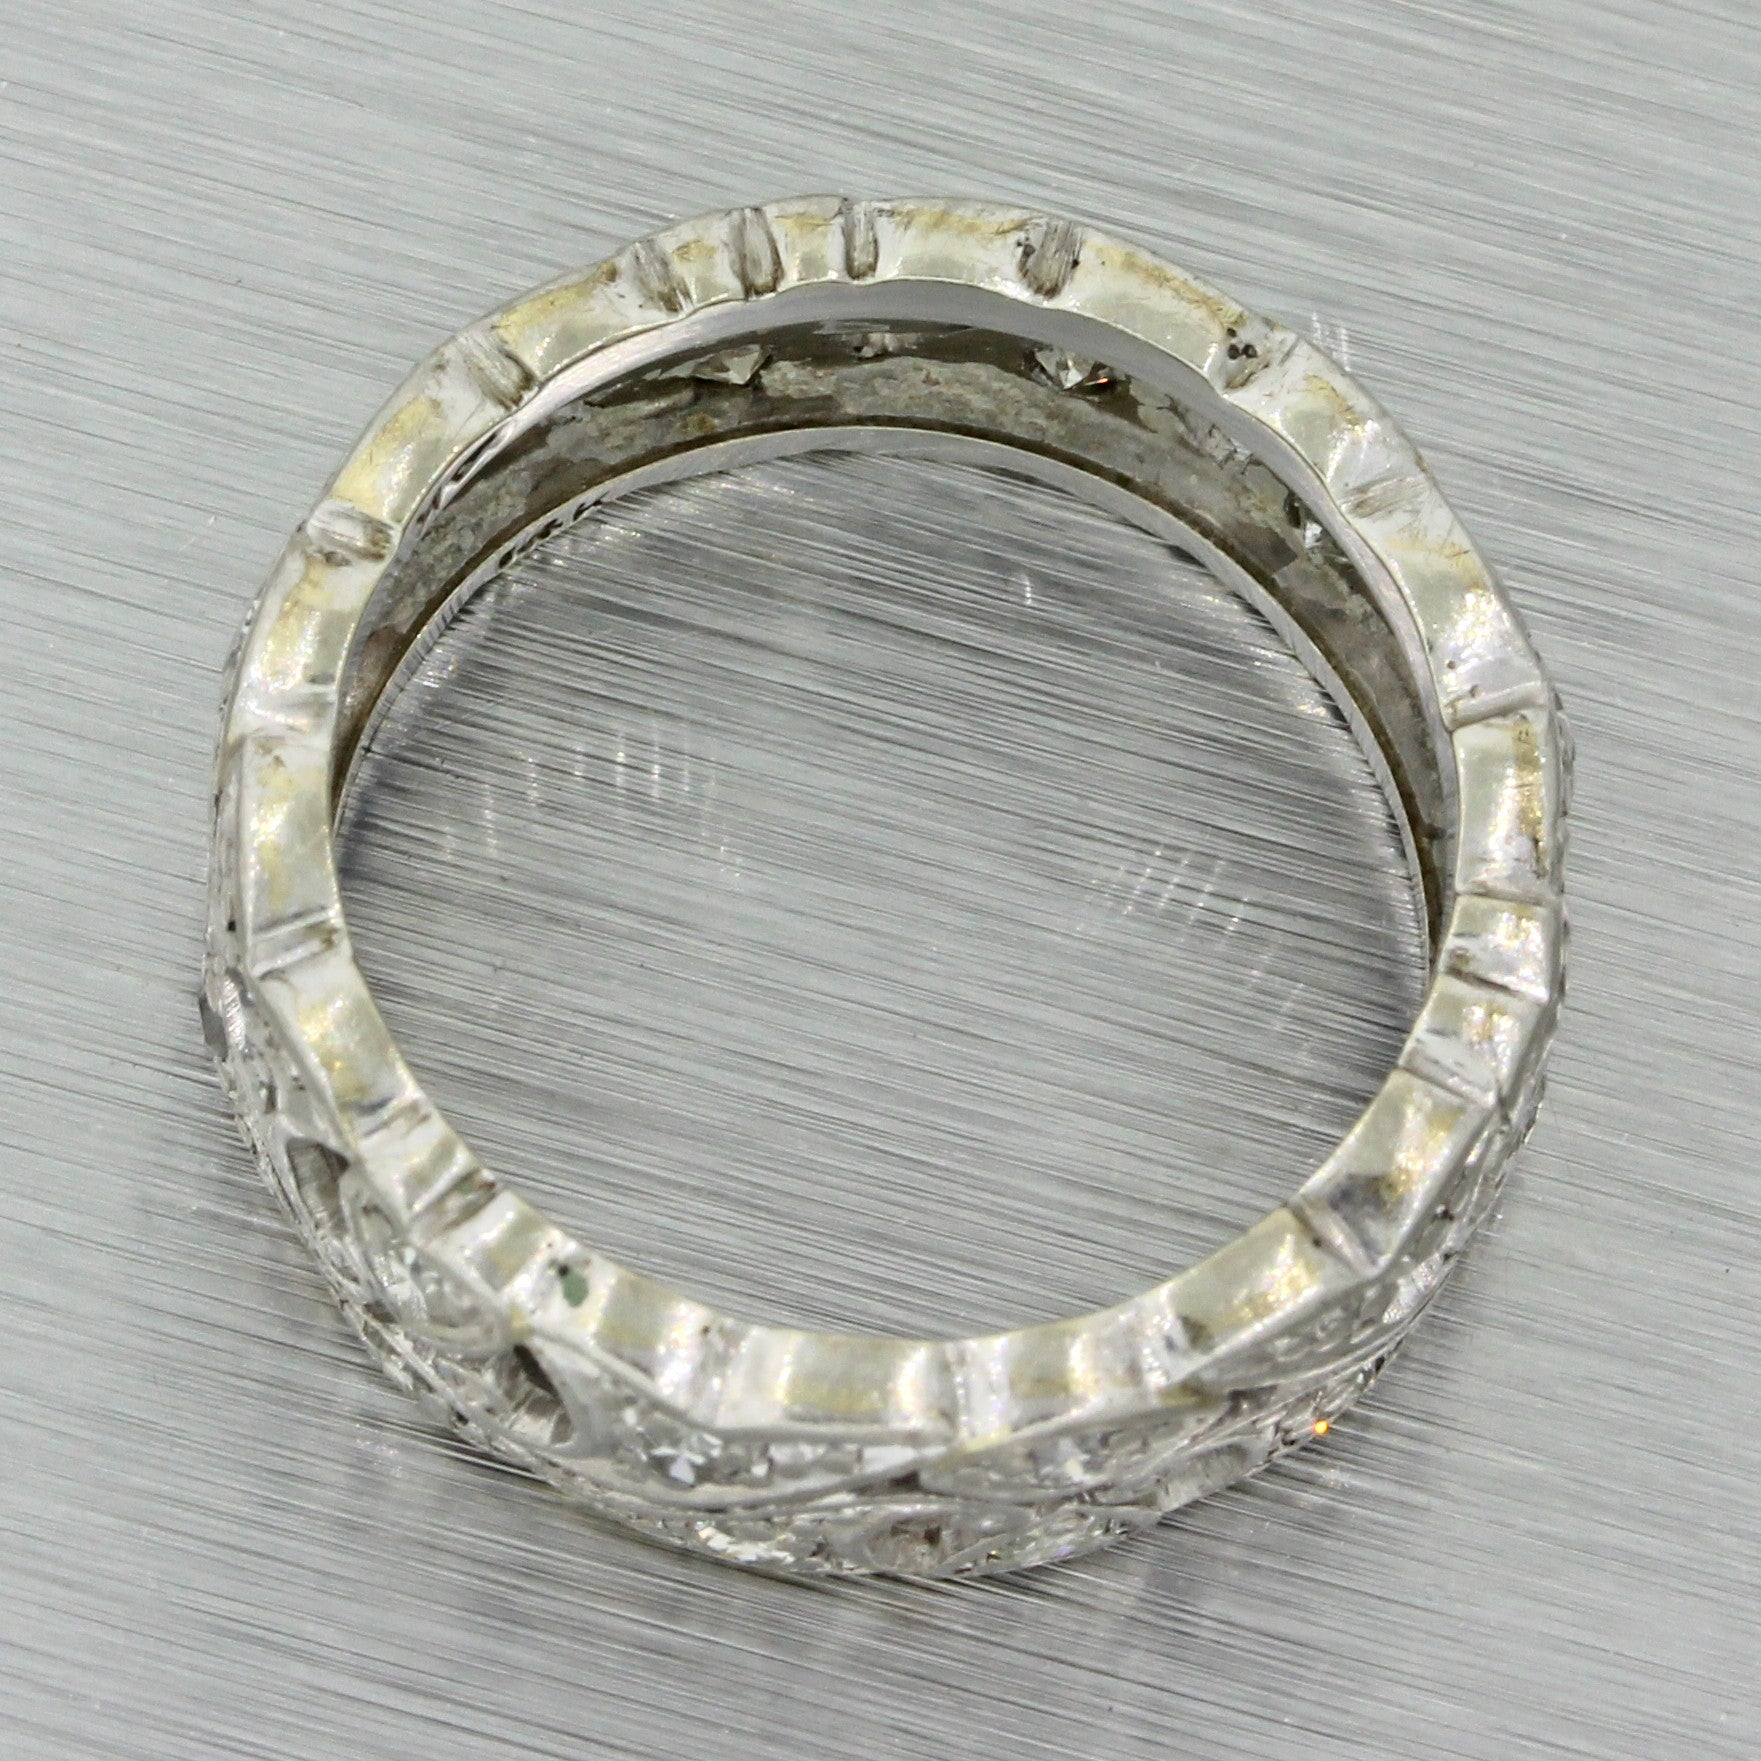 1920s Antique Art Deco 14k Solid White Gold .28ctw Diamond Filigree Band Ring